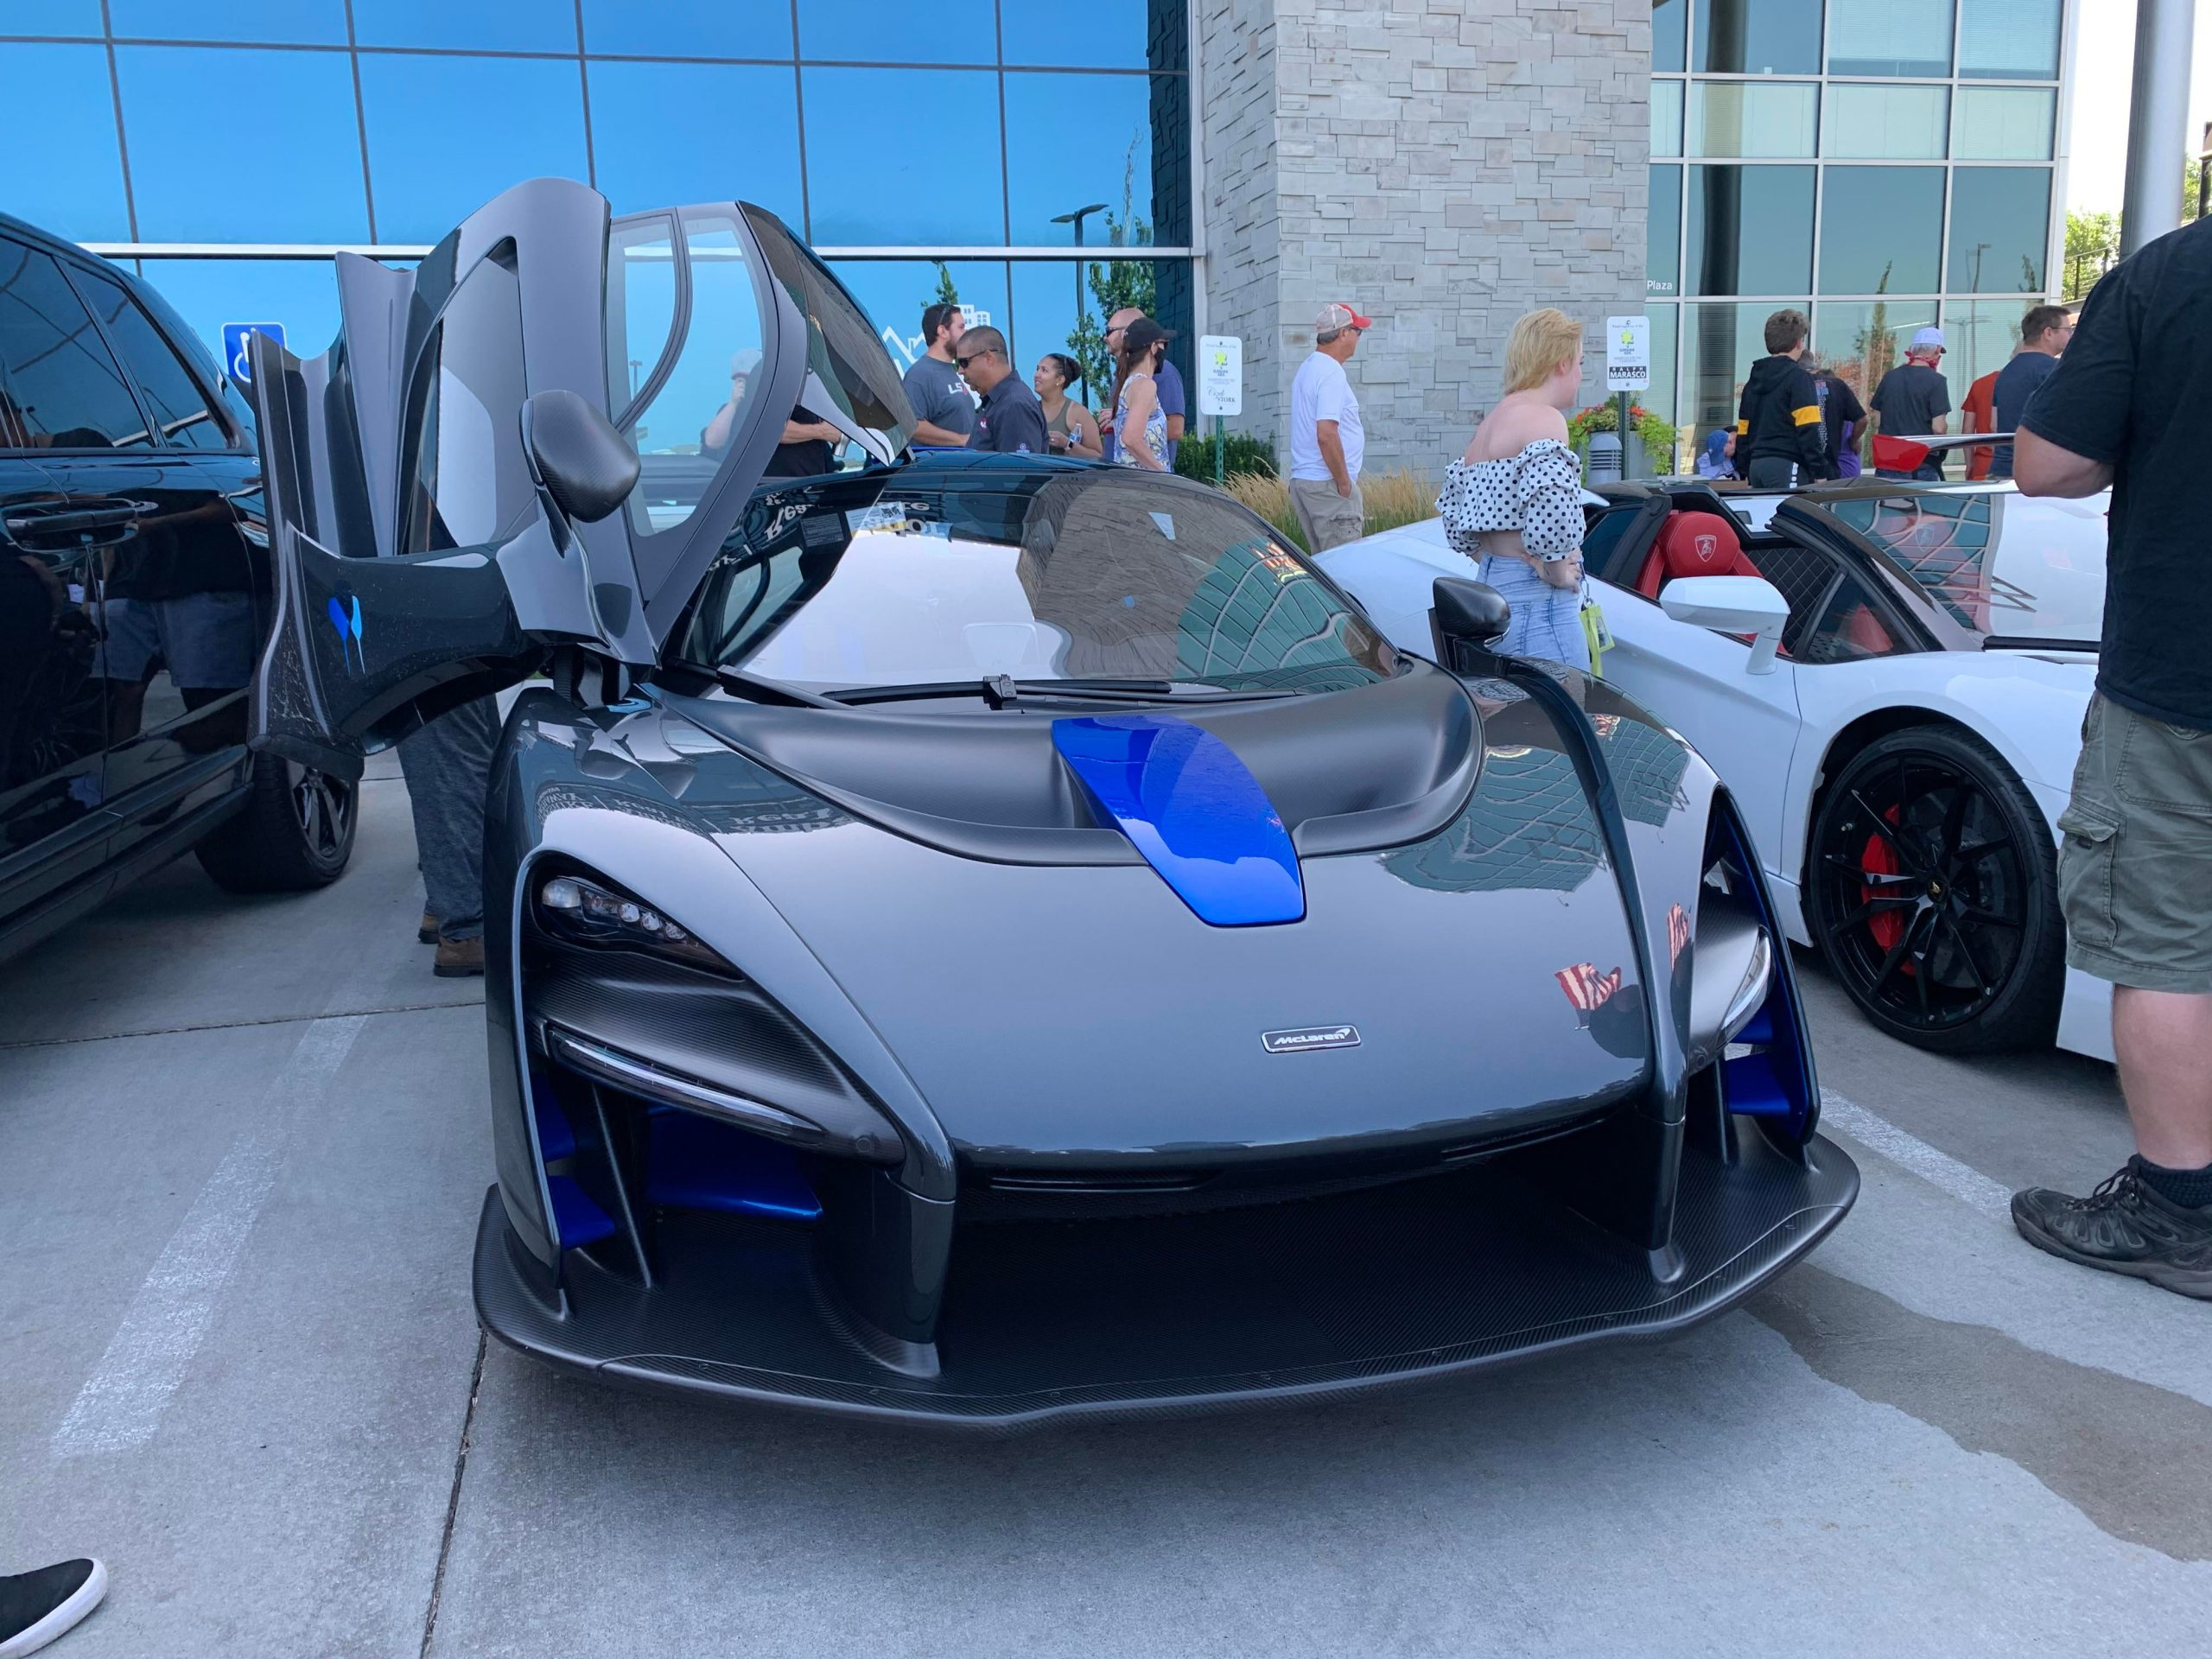 Saw this Mclaren Senna in Omaha Nebraska today